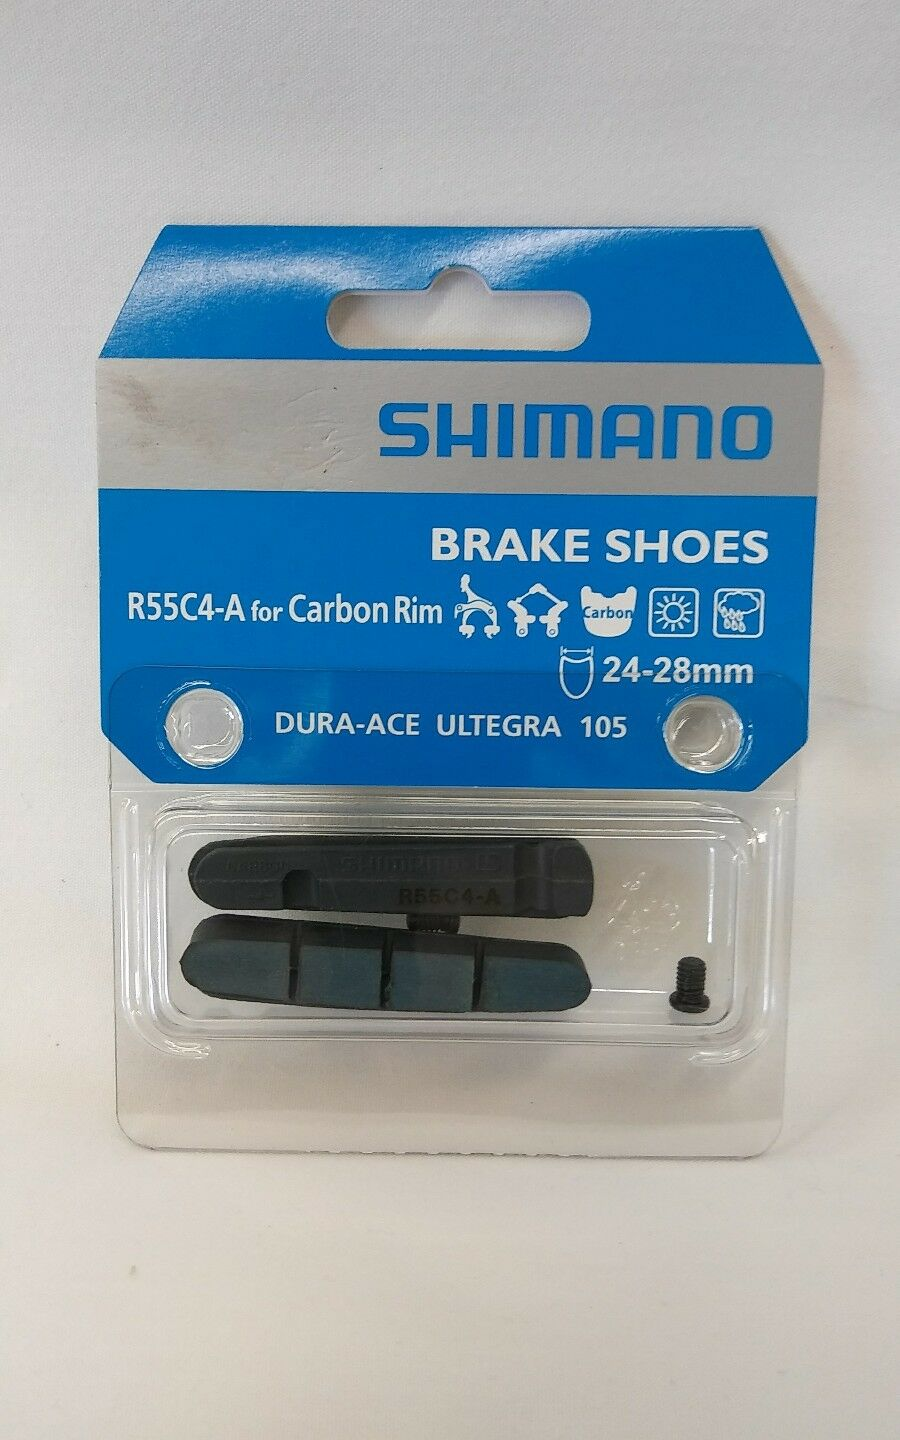 SHIMANO  BRAKE SHOES R55C4-A CARBON RIM DURA-ACE ULTEGRA 105  save up to 70%